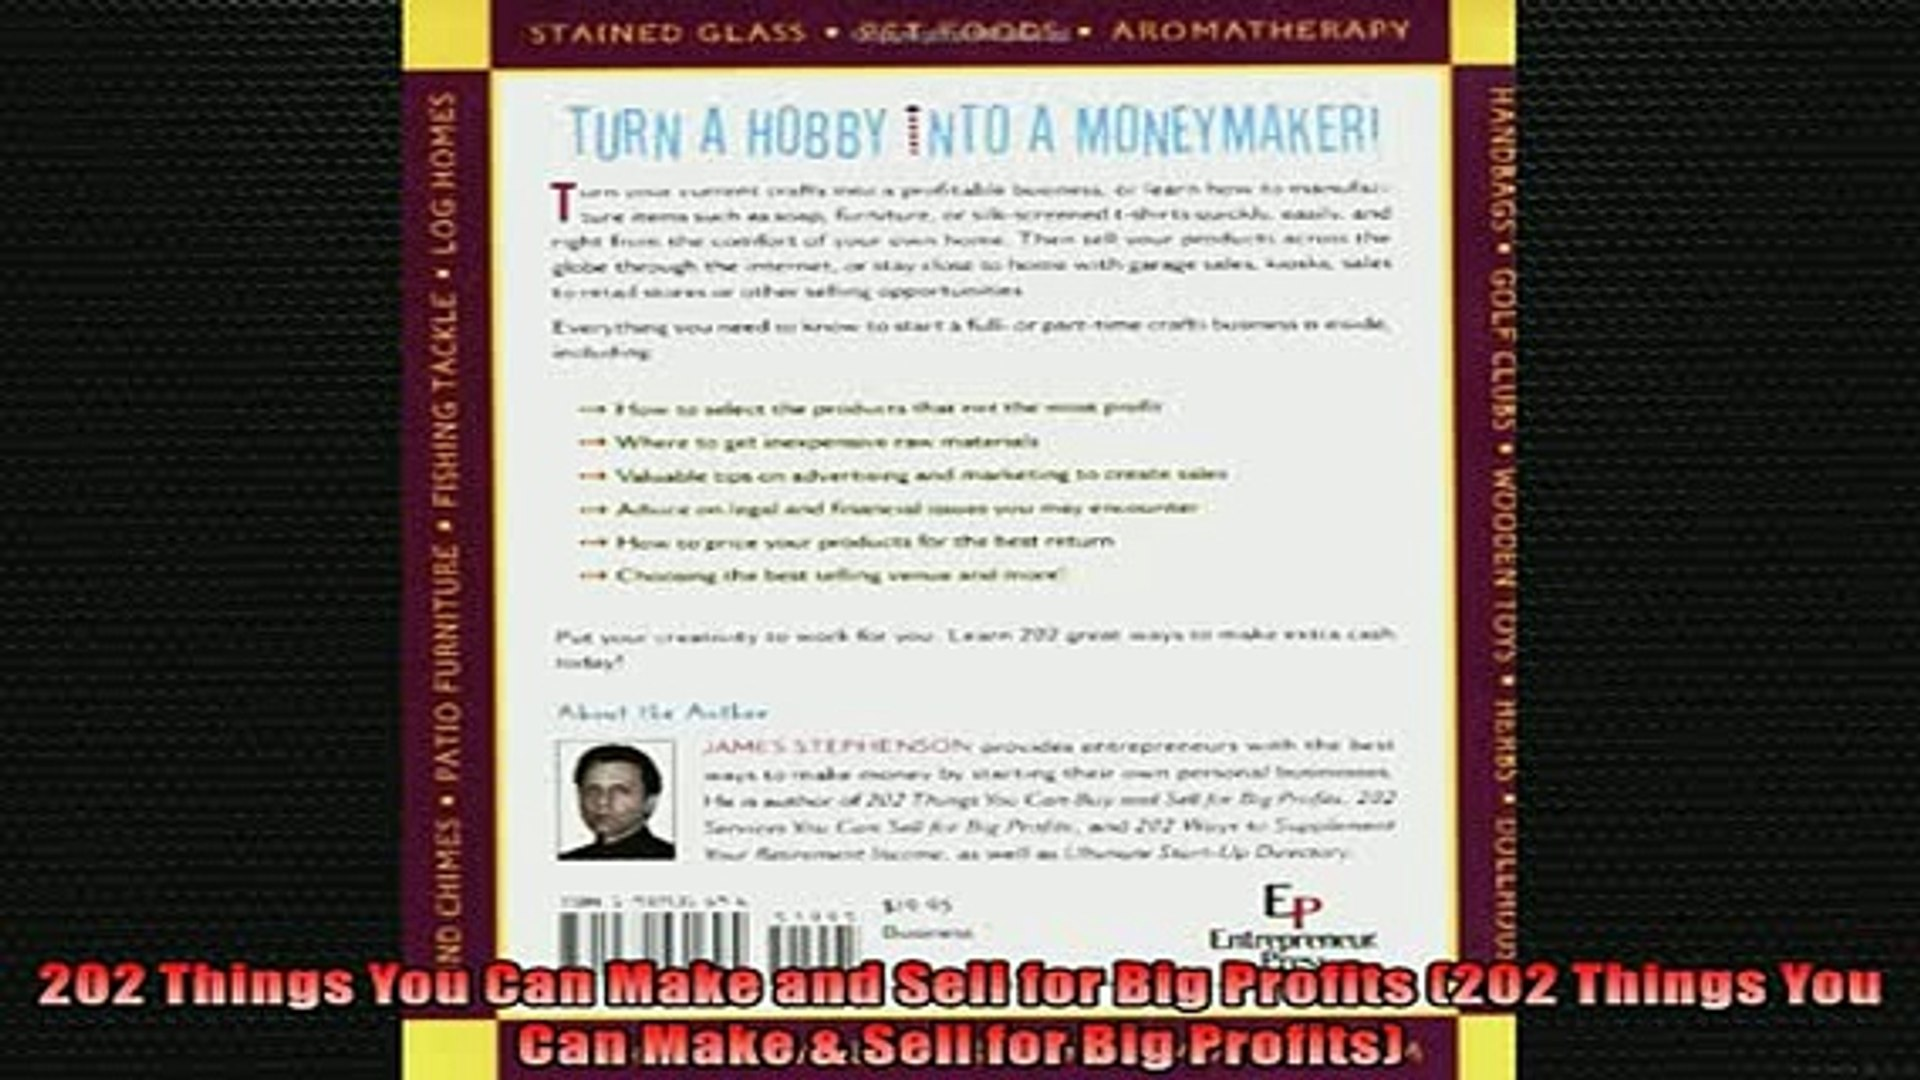 Free PDF Downlaod  202 Things You Can Make and Sell for Big Profits 202 Things You Can Make  Sell fo